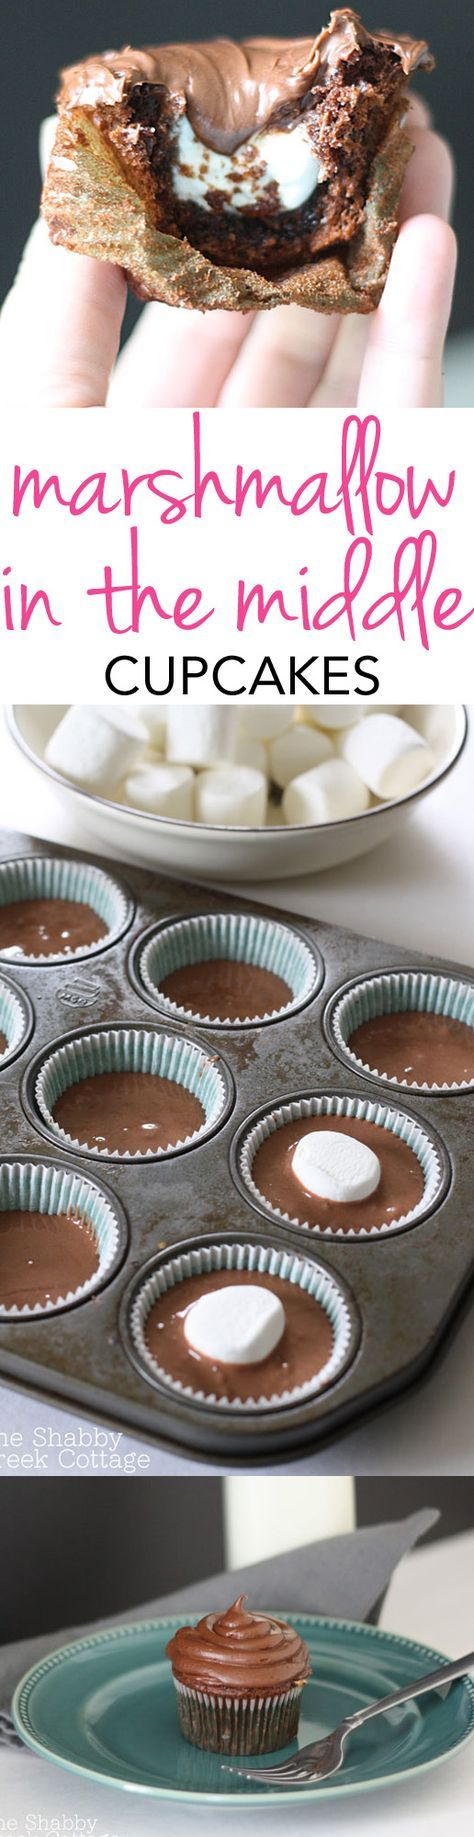 Marshmallow in the middle chocolate cupcakes